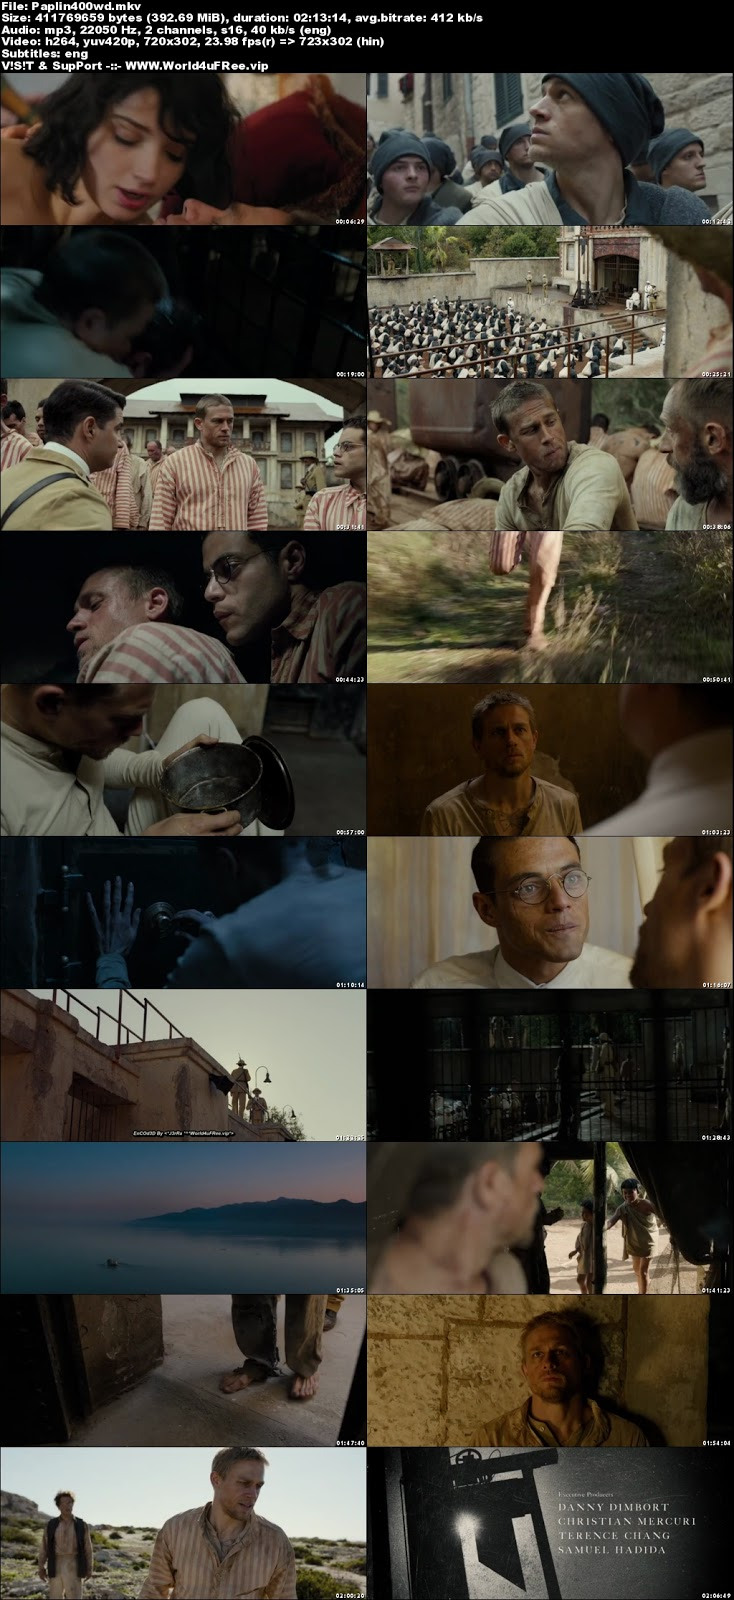 Papillon 2018 Eng HDRip 480p 400Mb ESub x264 world4ufree.vip hollywood movie Papillon 2018 english movie 720p BRRip blueray hdrip webrip Papillon 2018 web-dl 720p free download or watch online at world4ufree.vip